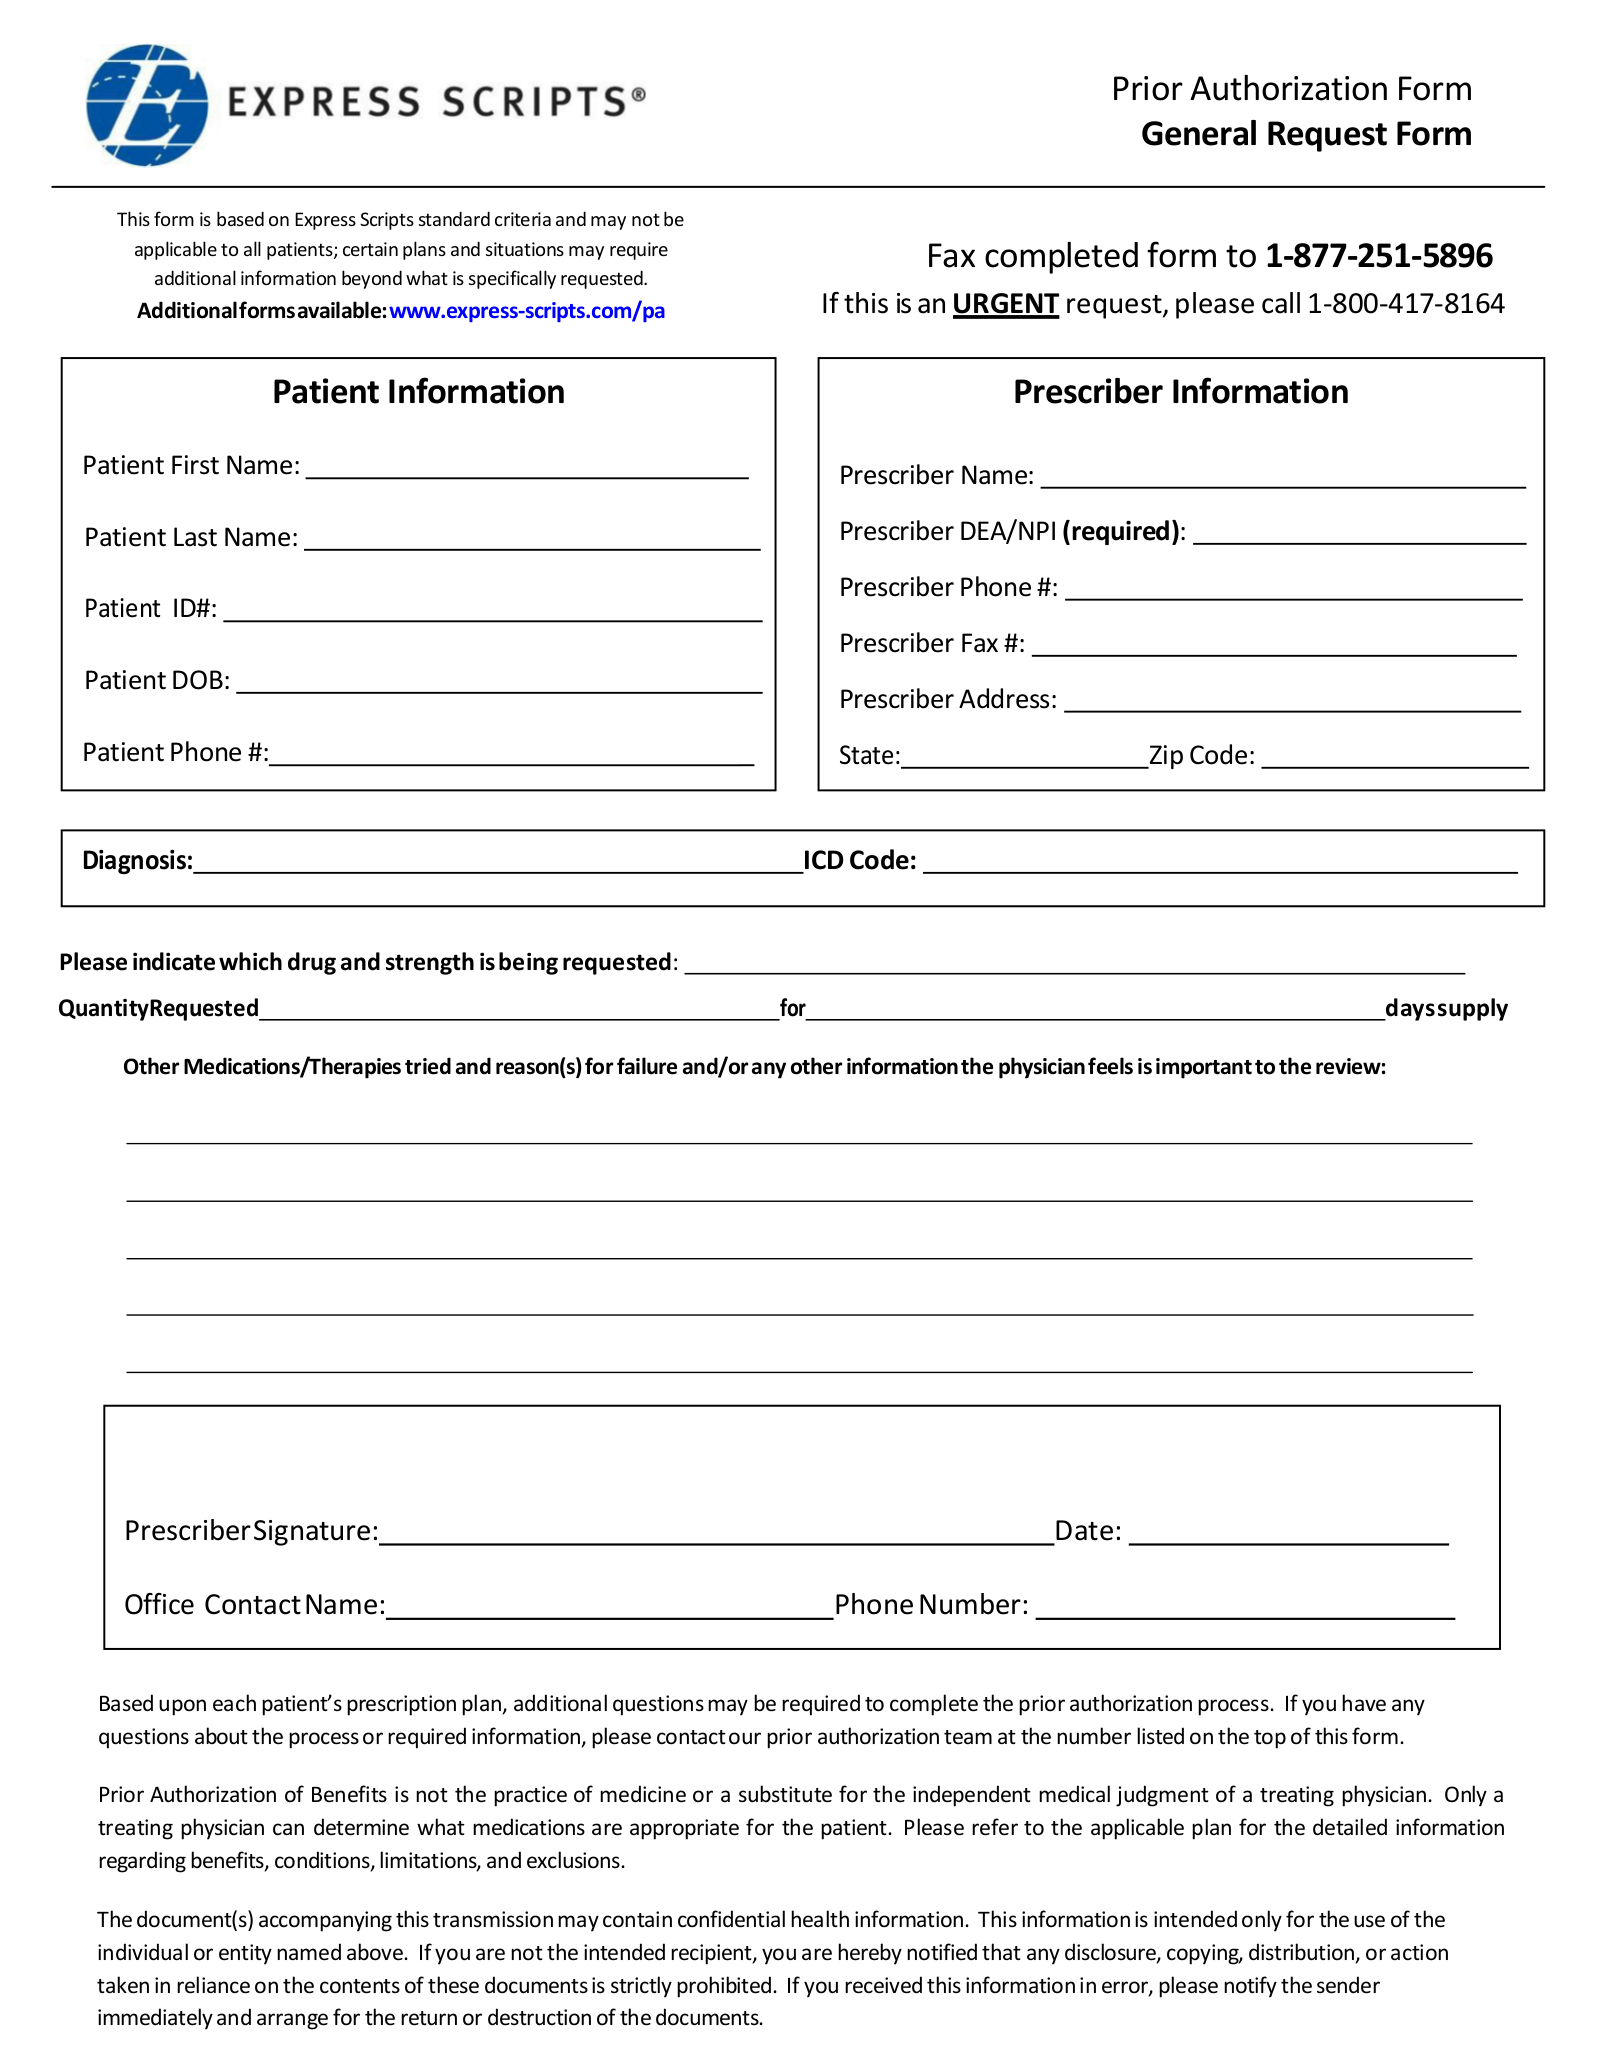 Free Express Scripts Prior (Rx) Authorization Form - PDF